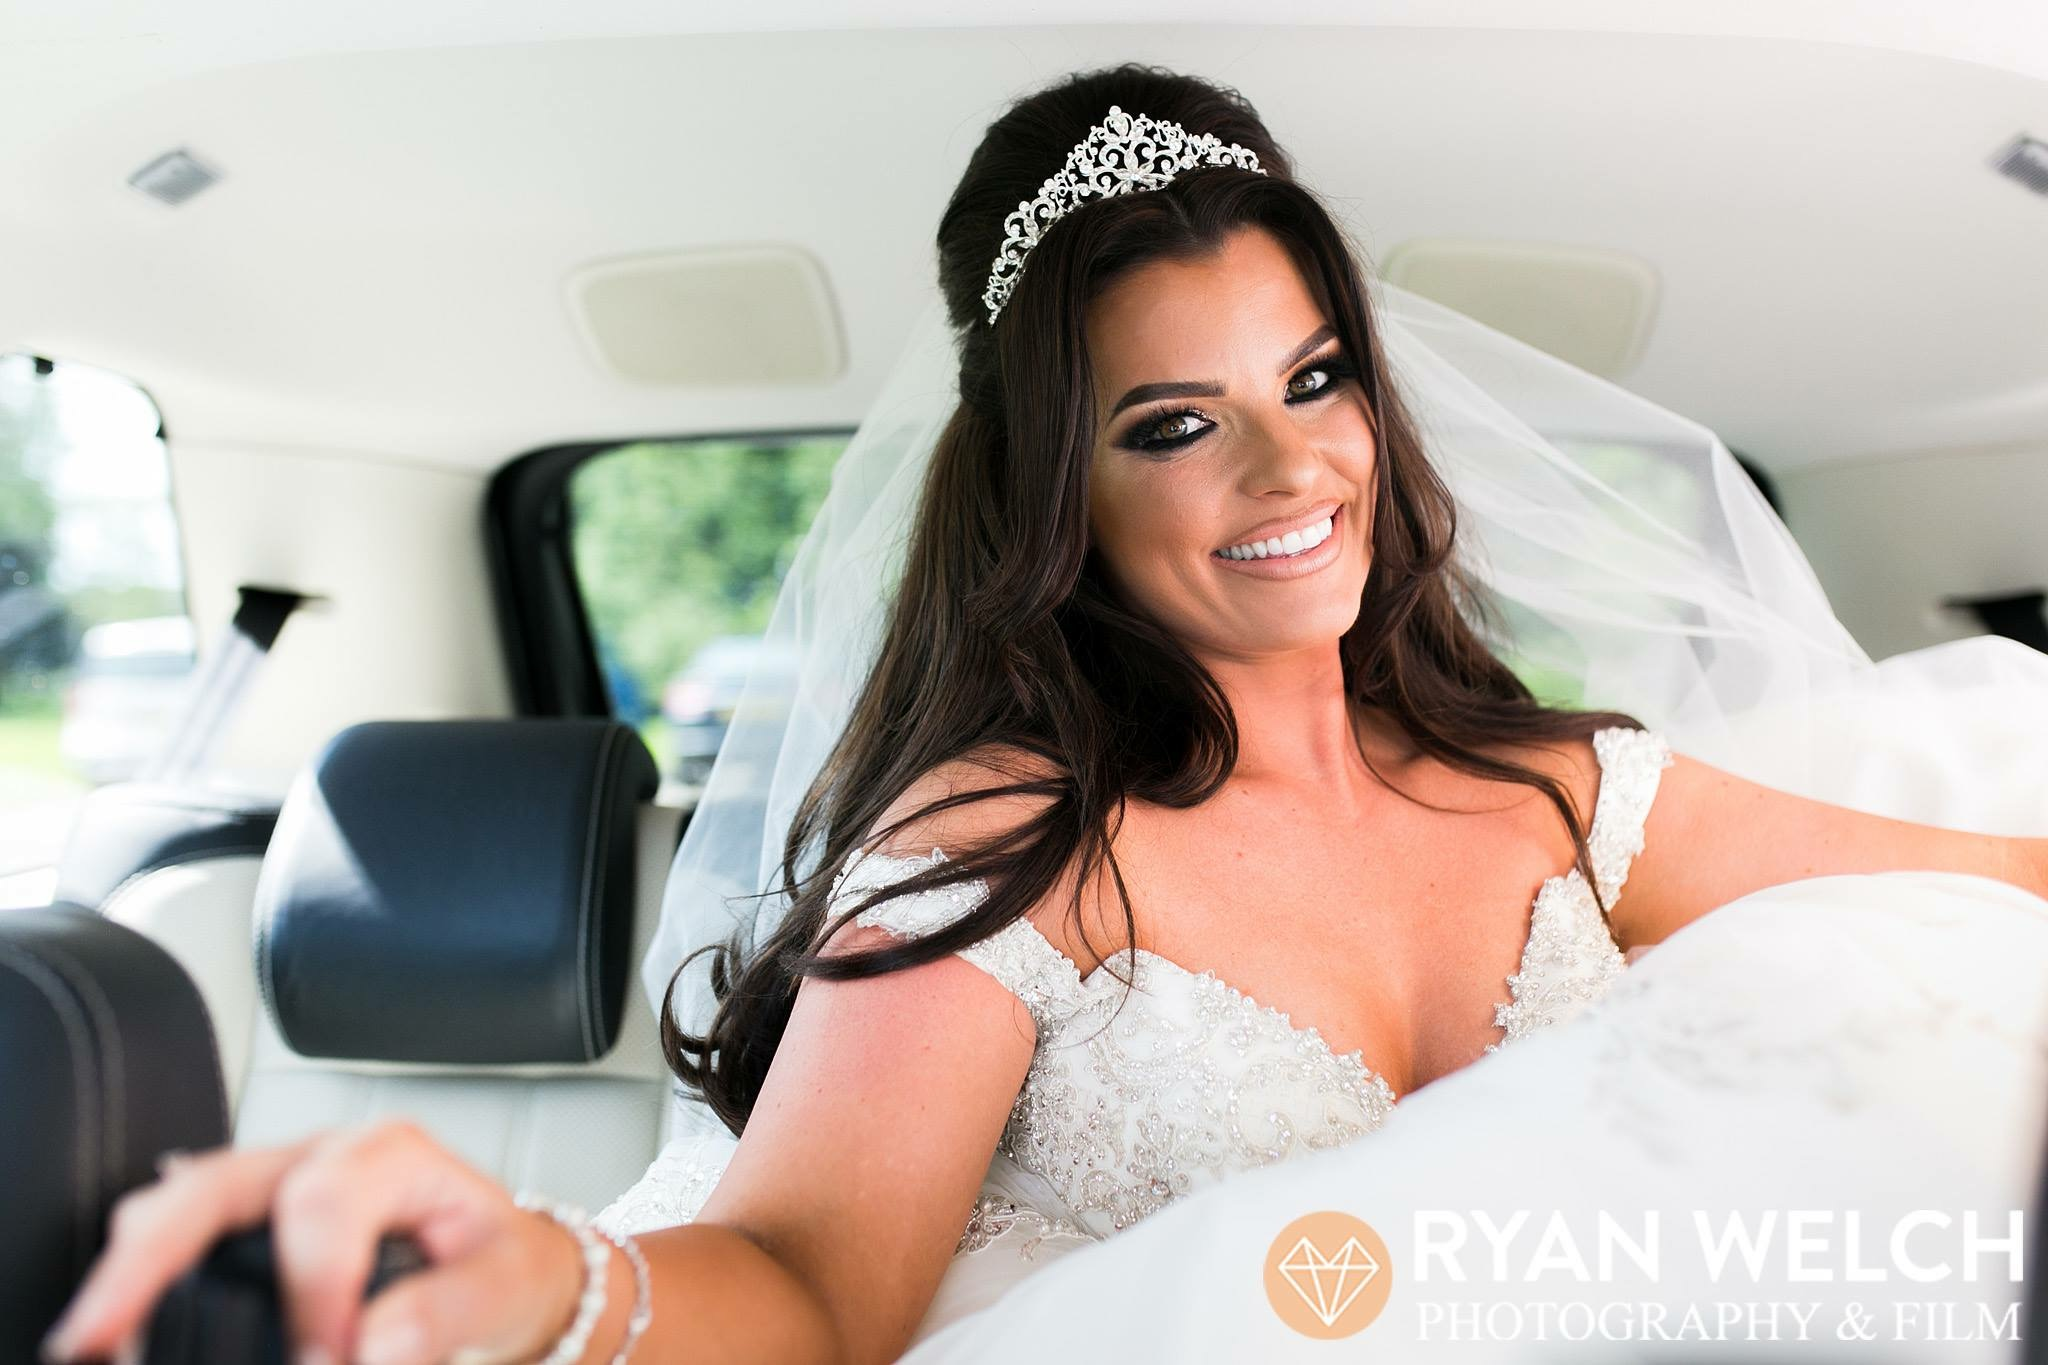 Happiness looks gorgeous on you   Wear that smile with confidence on your big day.   Find out about the wedding services